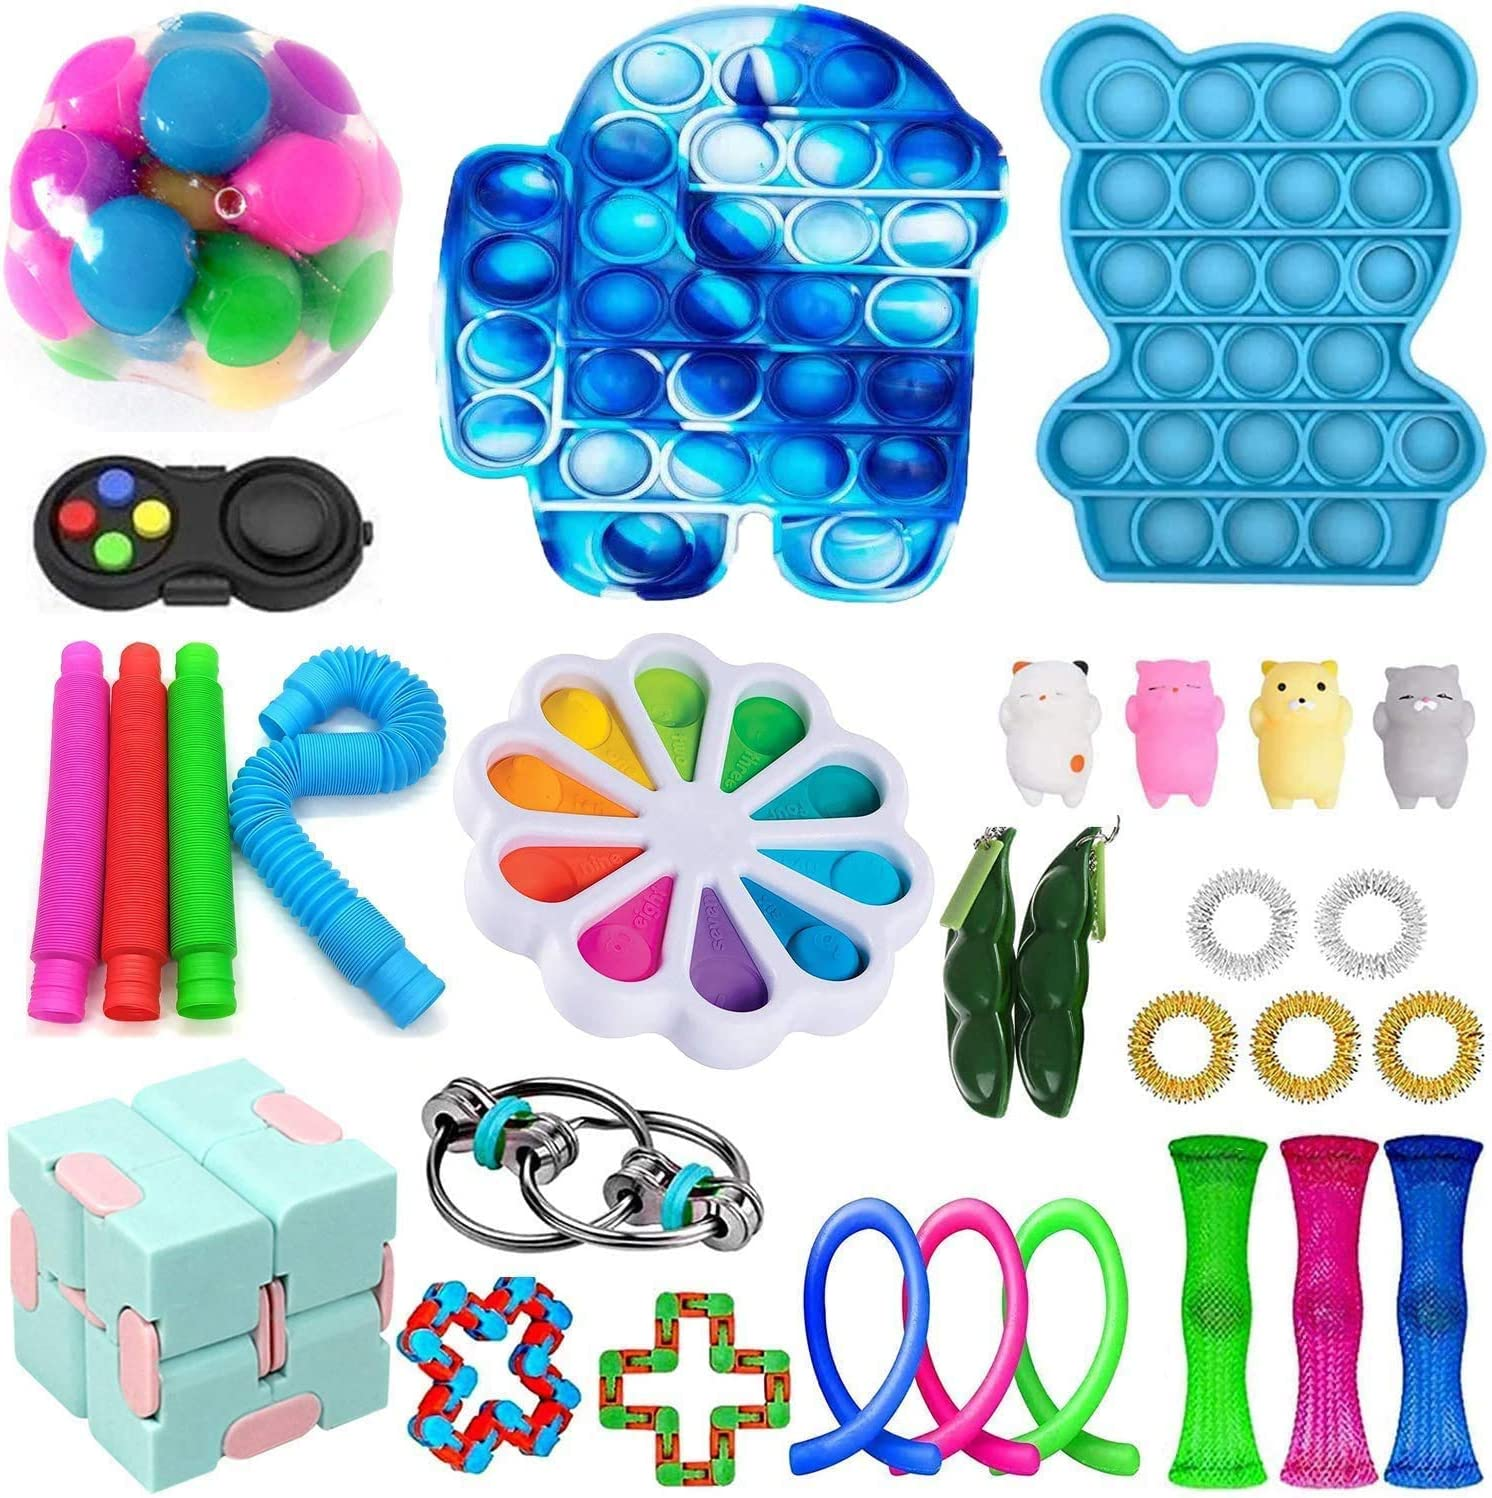 Fidget Toys Pack, Sensory Fidget Toys Cheap, Fidget Toy Set Figetgets-Toys Pack Fidget Box, Fidget Pack with Simples-Dimples in It, Gifts for Kids&Adults with Autism (30 Pcs Fidget Packs)